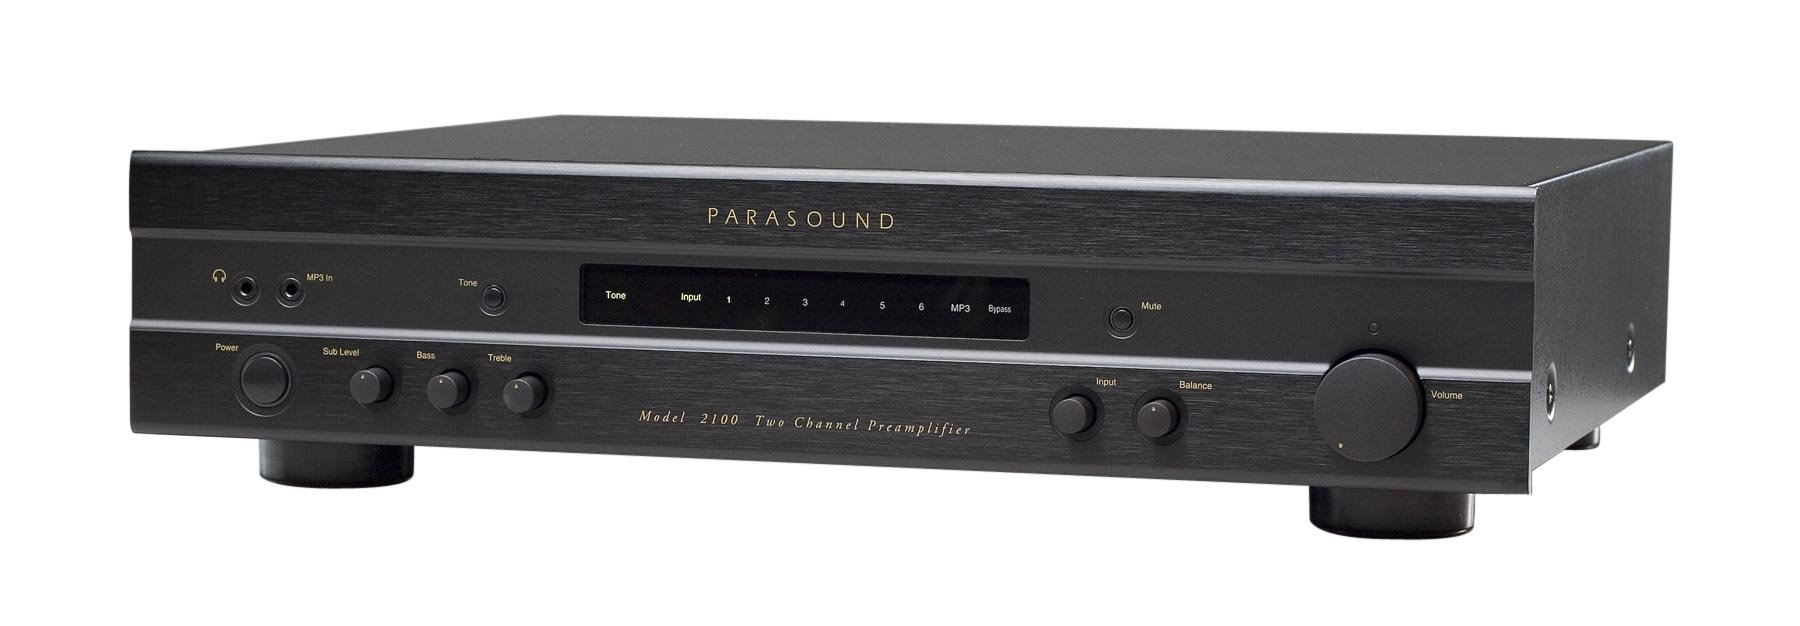 Parasound - Classic 2100 Stereo Preamp by Parasound